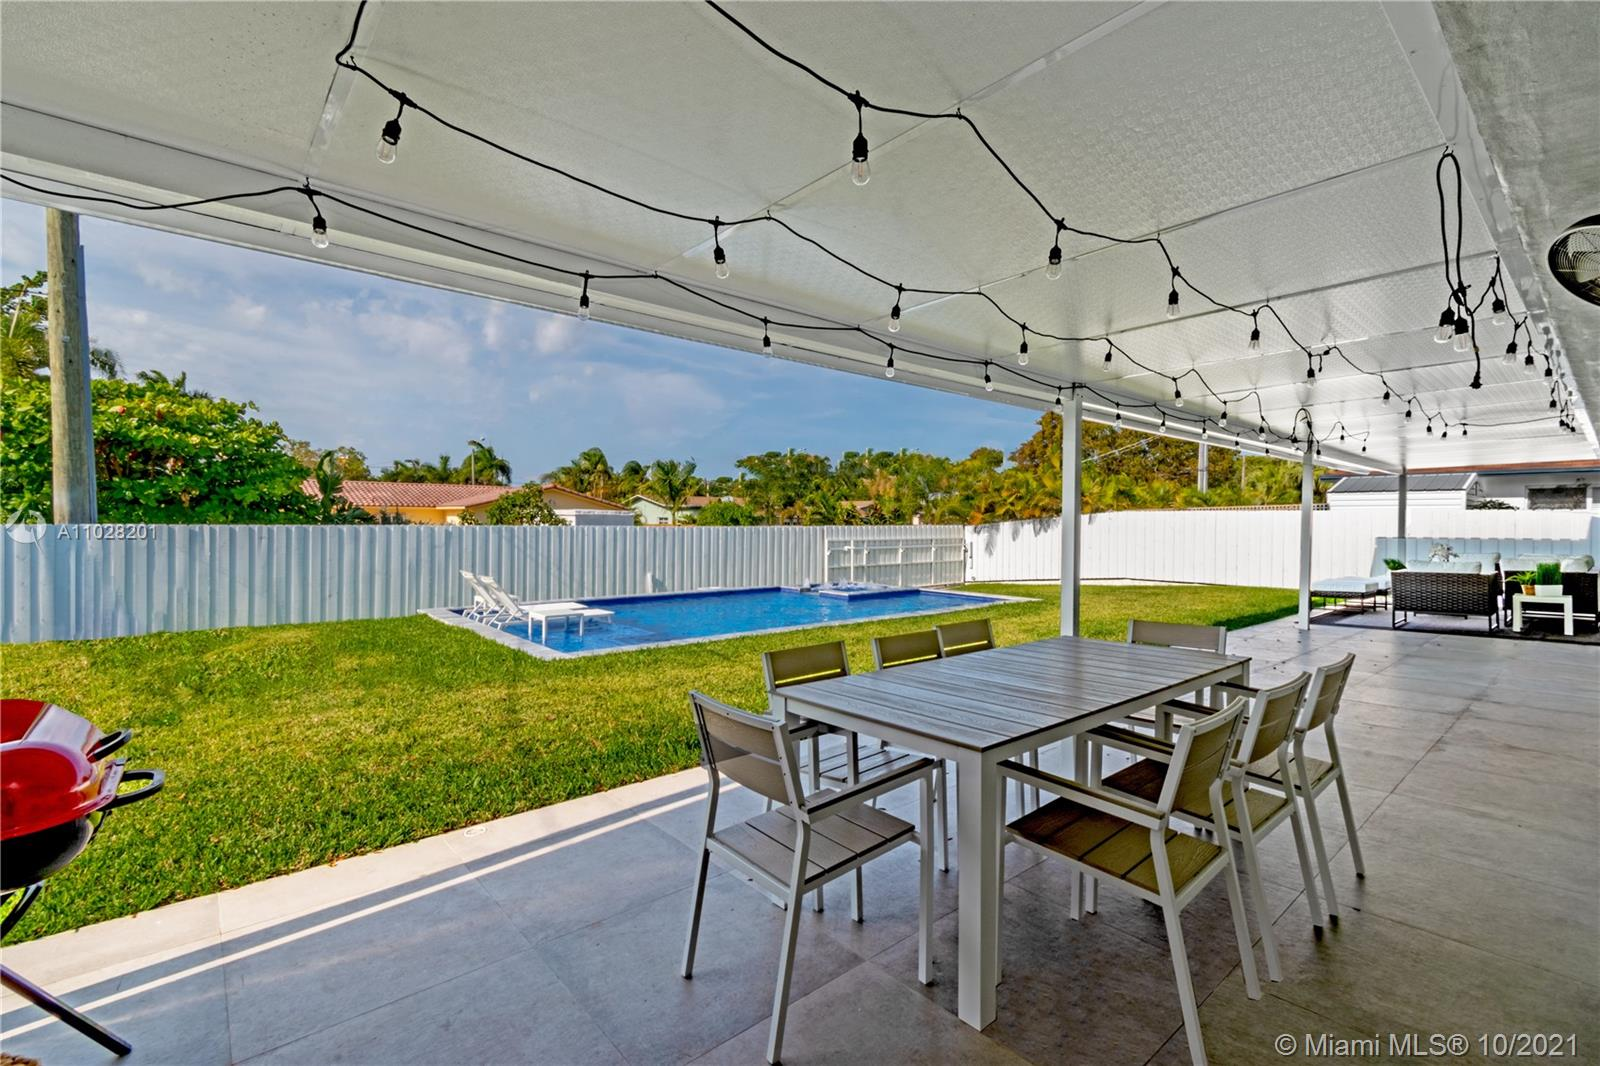 Huge backyard with covered a large area for dining, lounge and entertain. All new fencing!